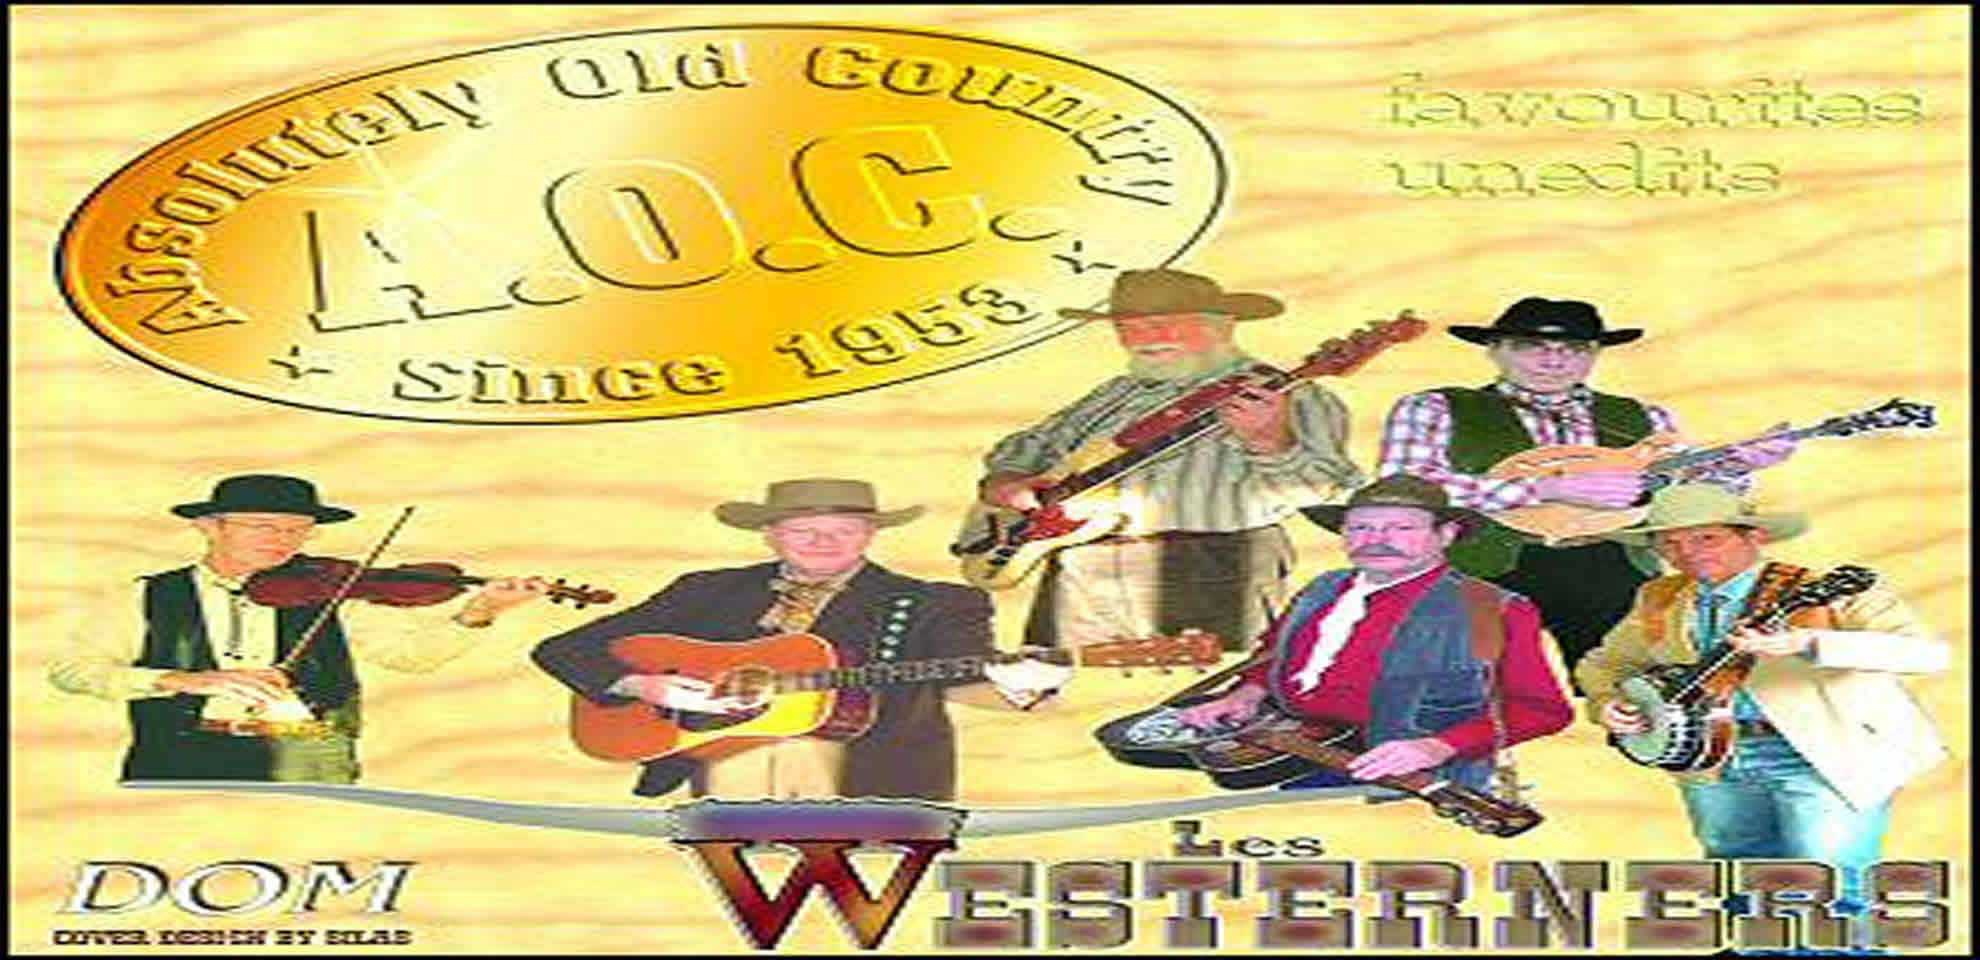 Les Westerners